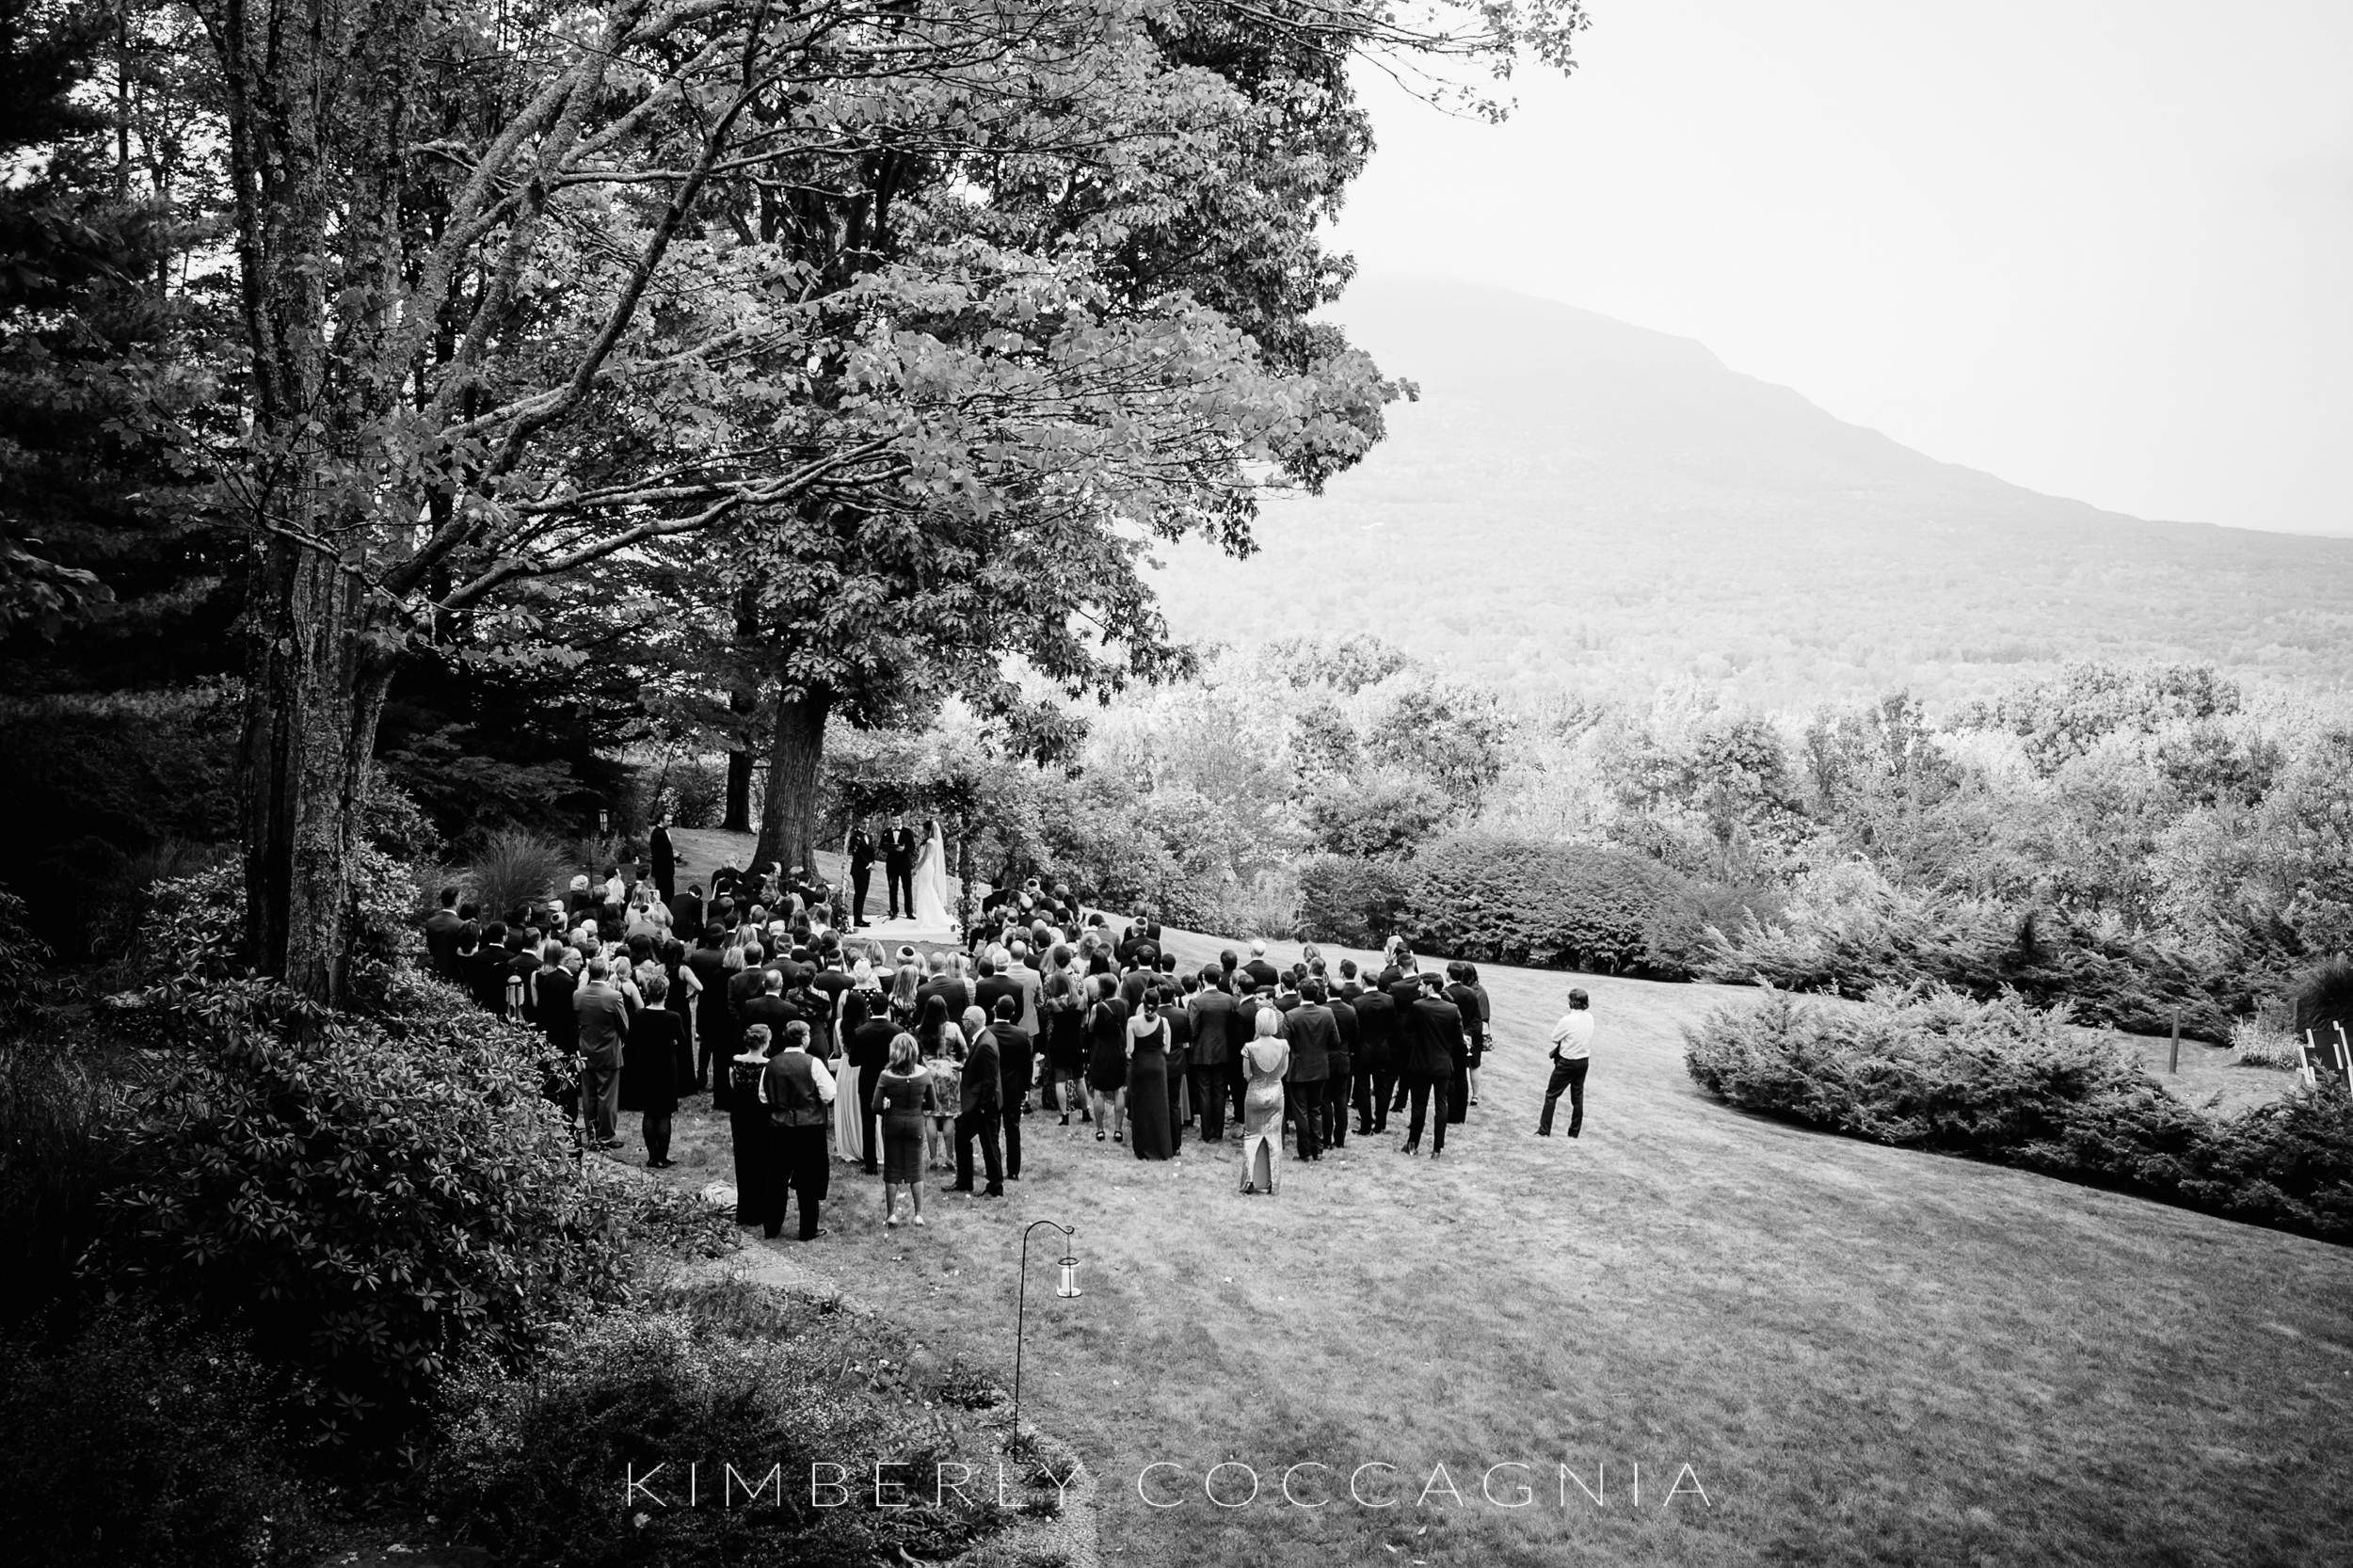 Kimberly+Coccagnia+Hudson+Valley+Wedding+Photographer-52.JPG